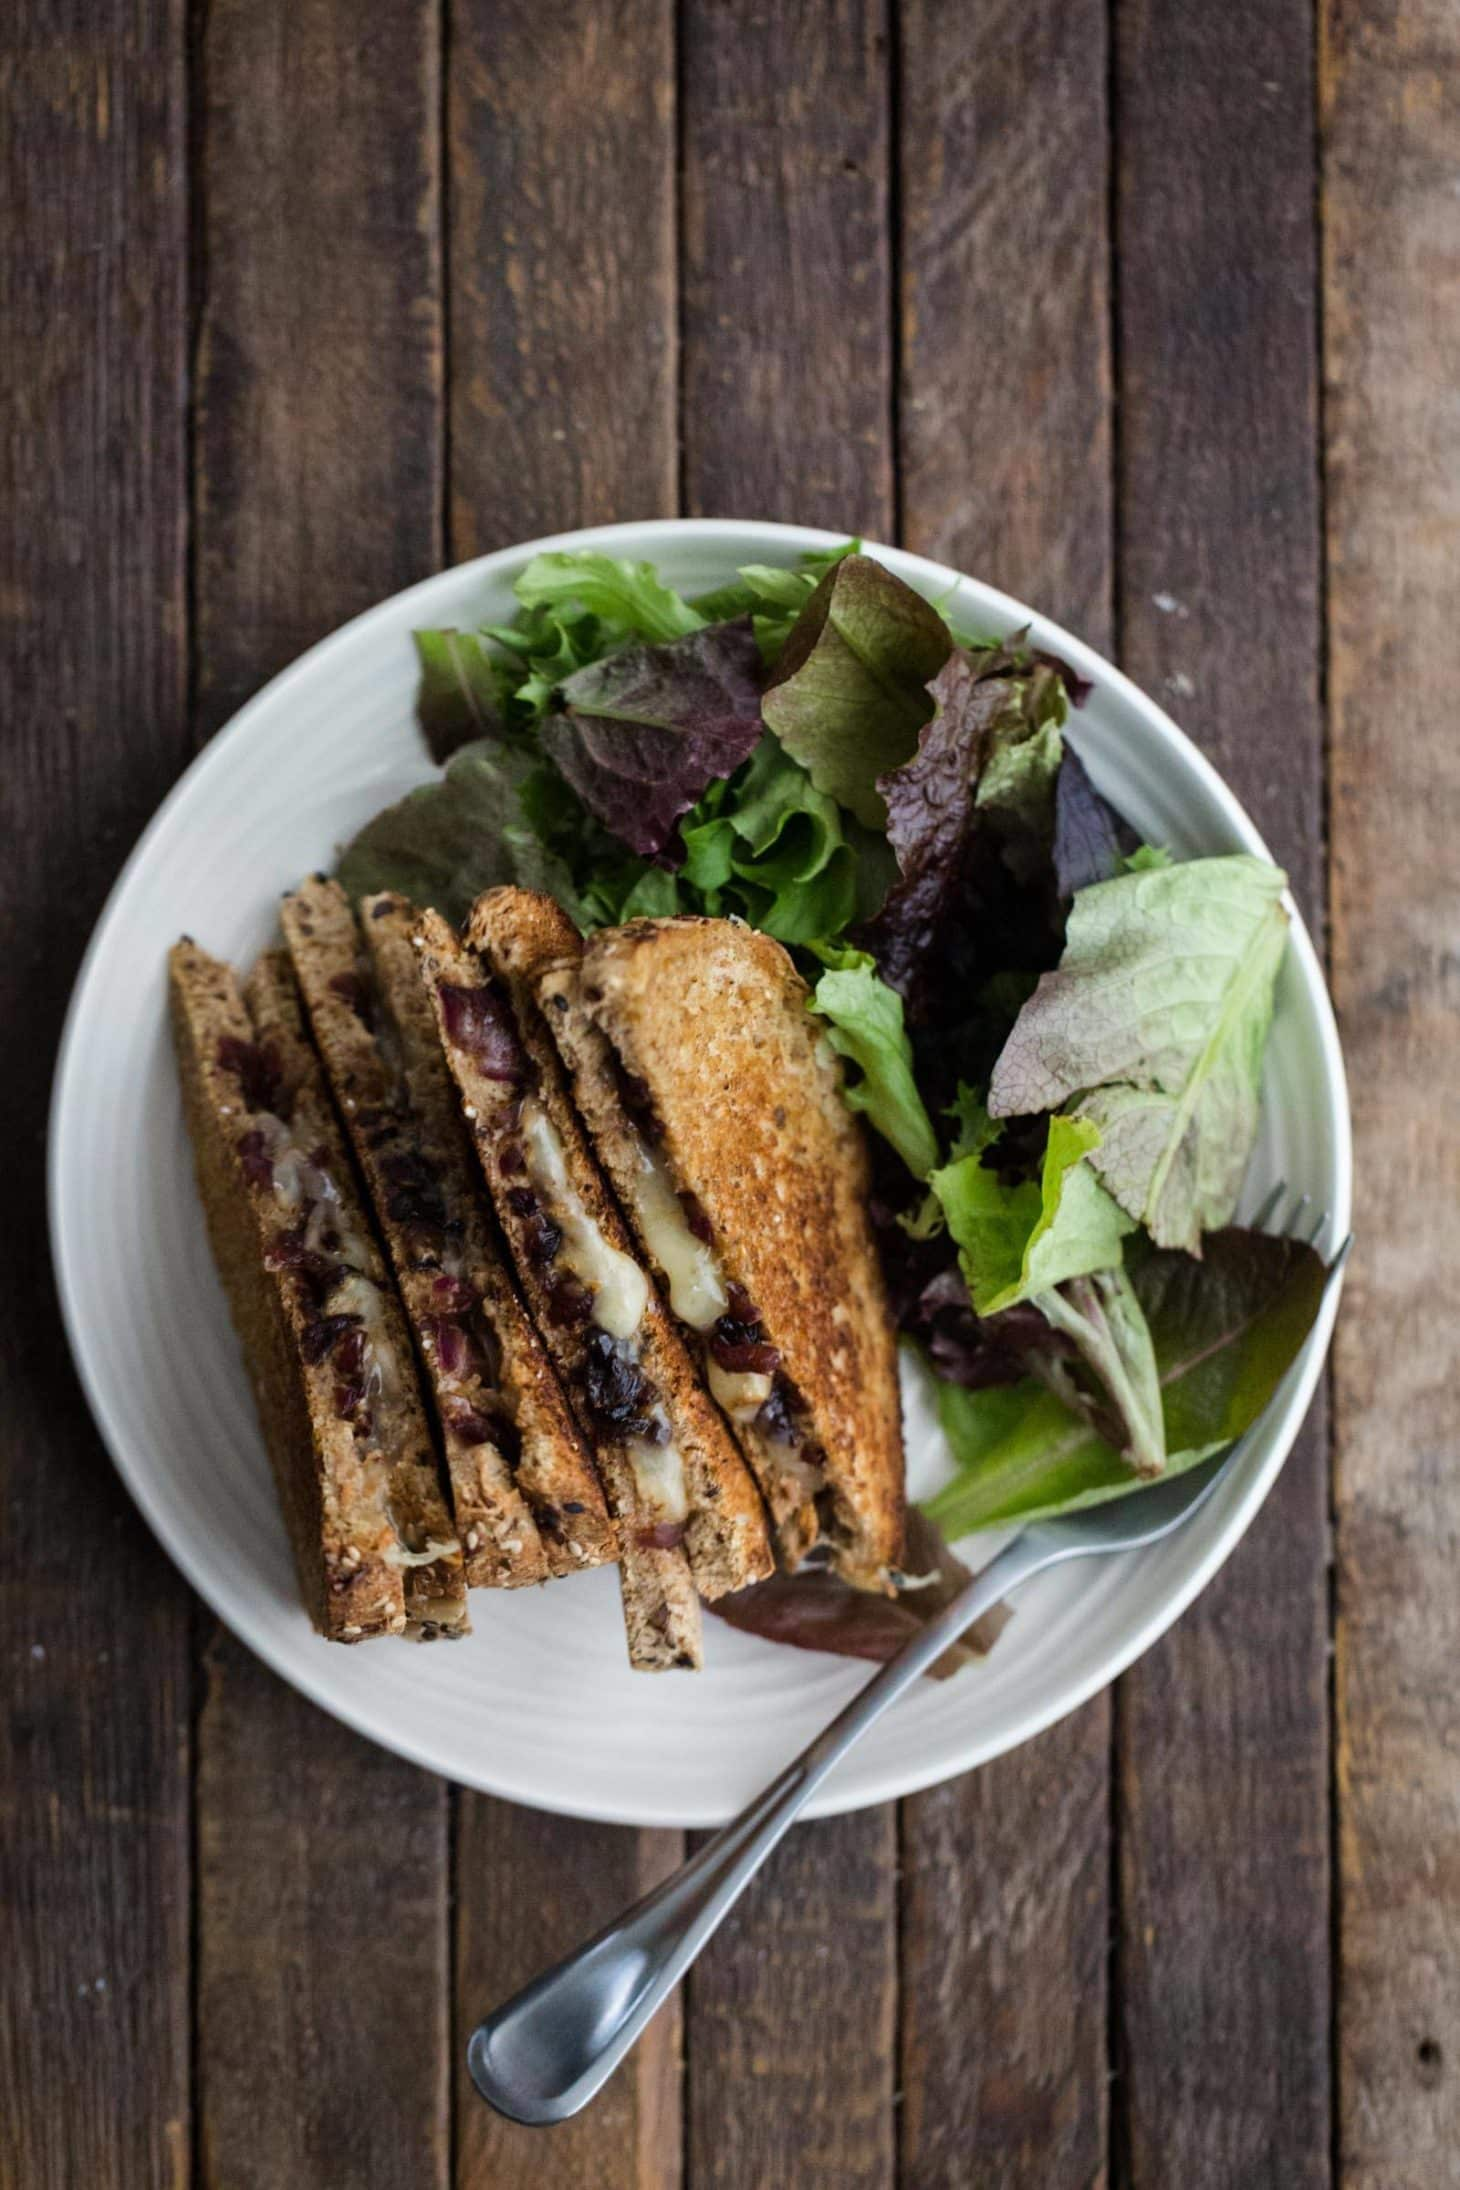 Grilled Cheese with Balsamic Onions and Mustard